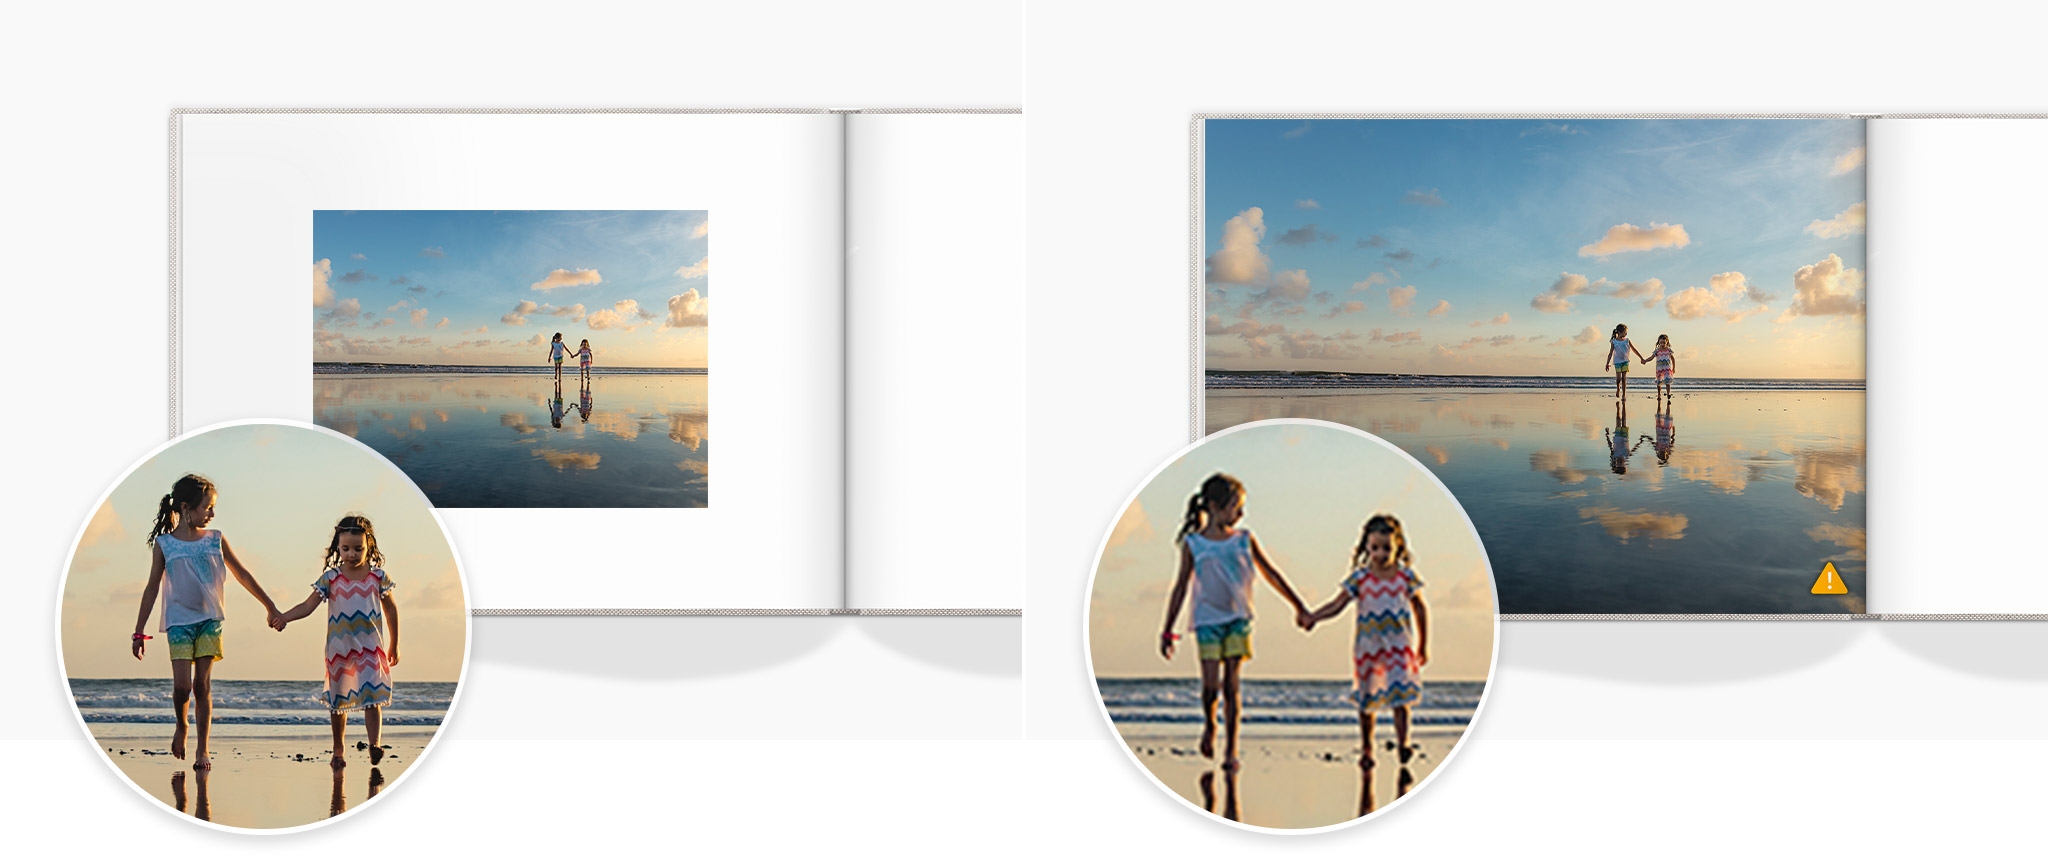 Two photo books open with an image of two young girls walking and holding hands on a beach